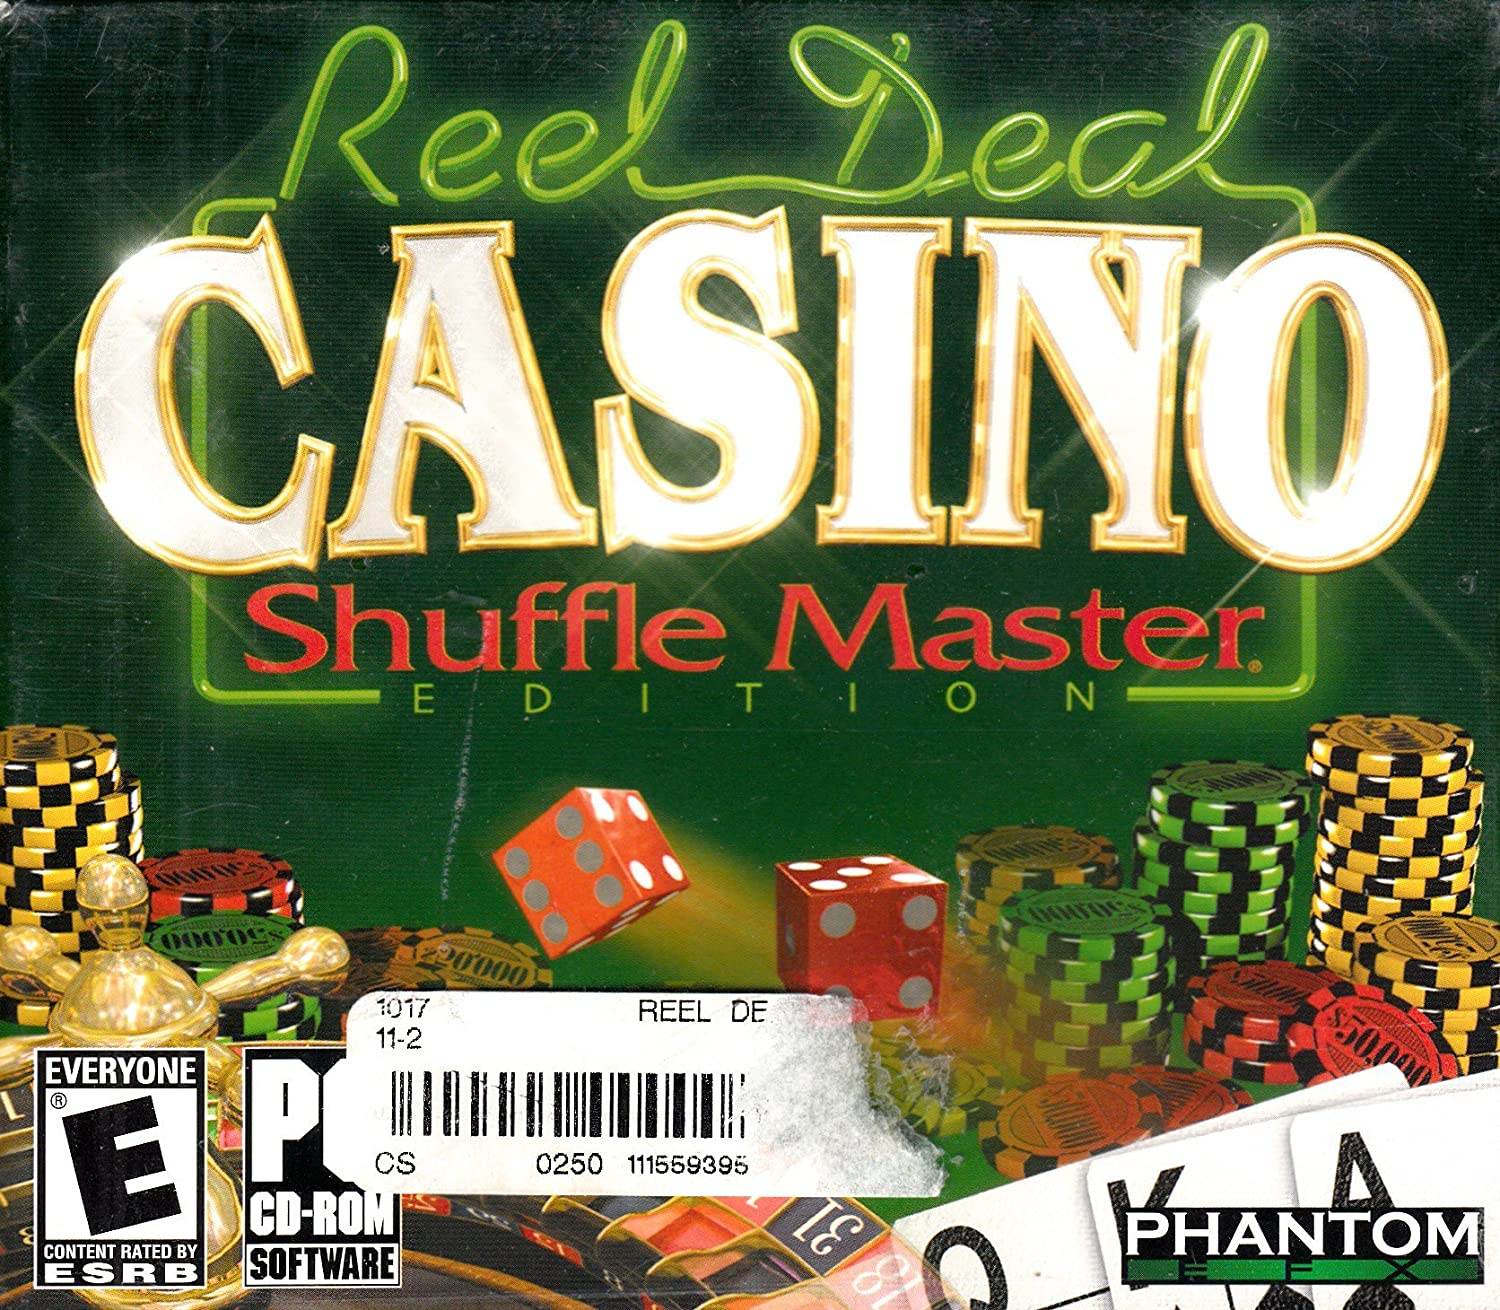 Real Deal Casino